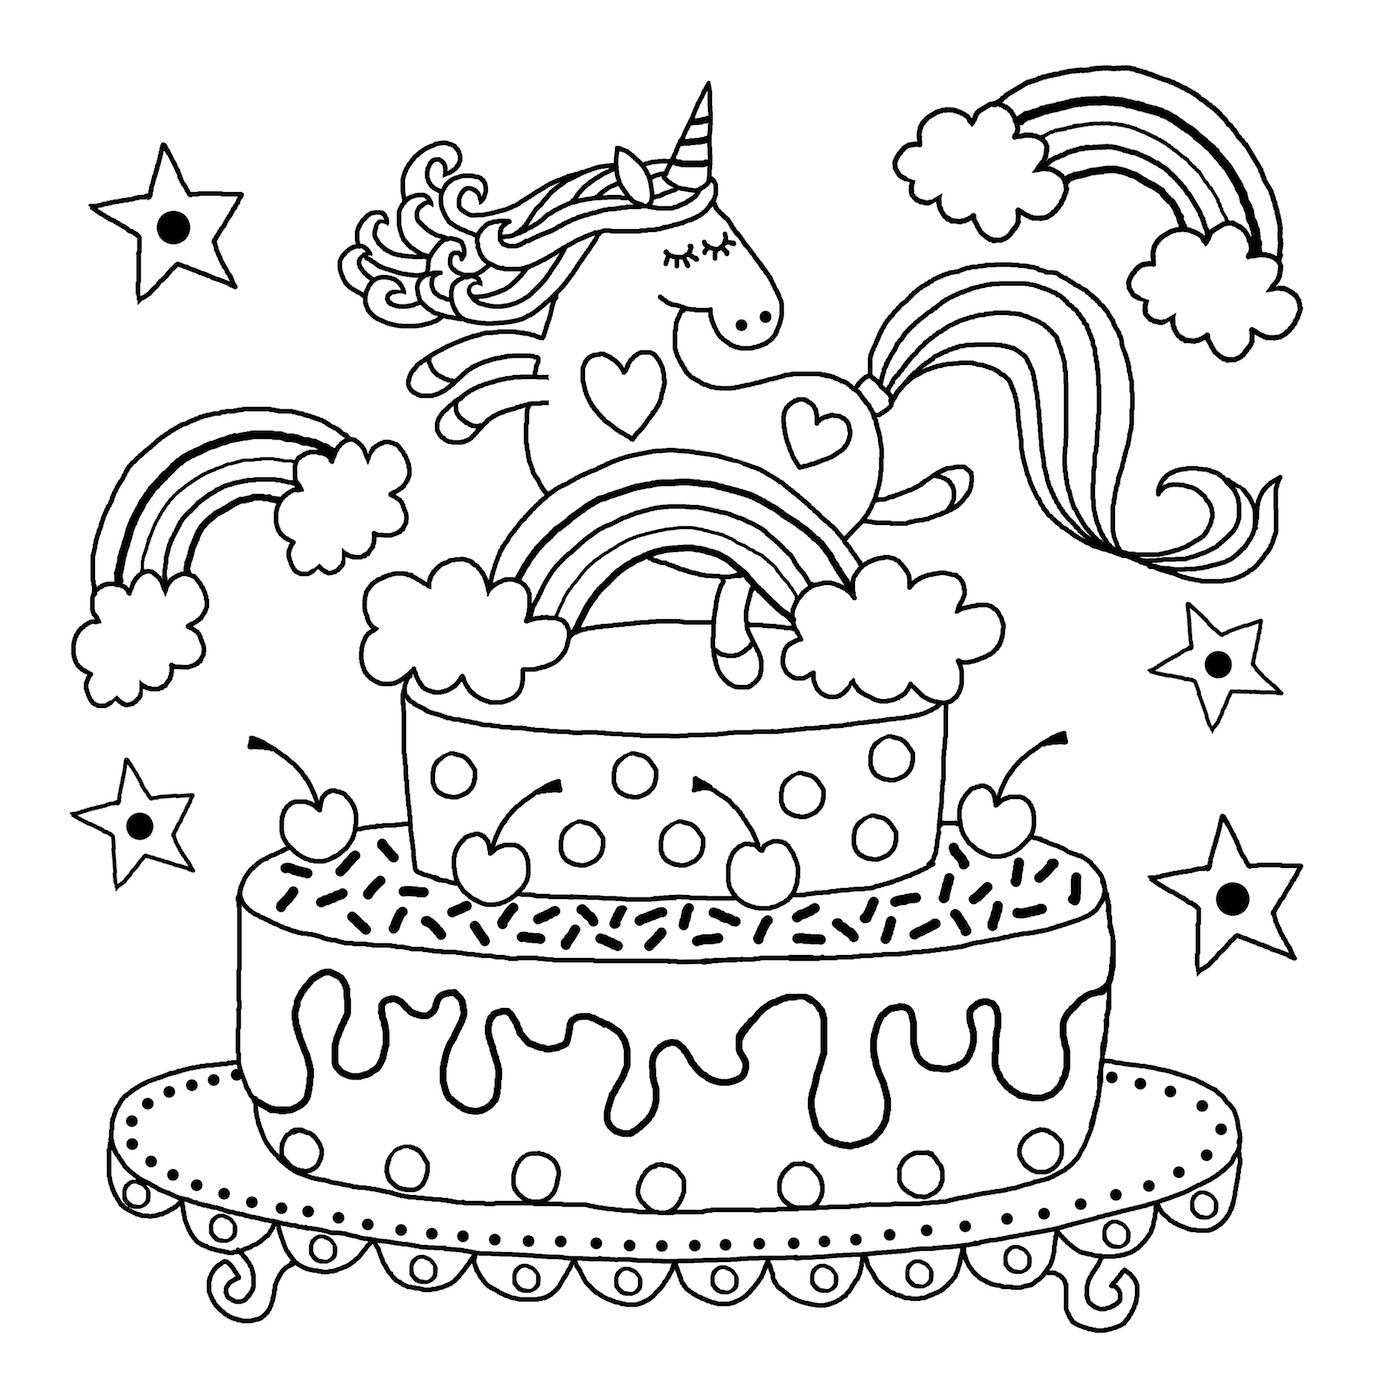 coloring pages of unicorns print download unicorn coloring pages for children unicorns pages of coloring